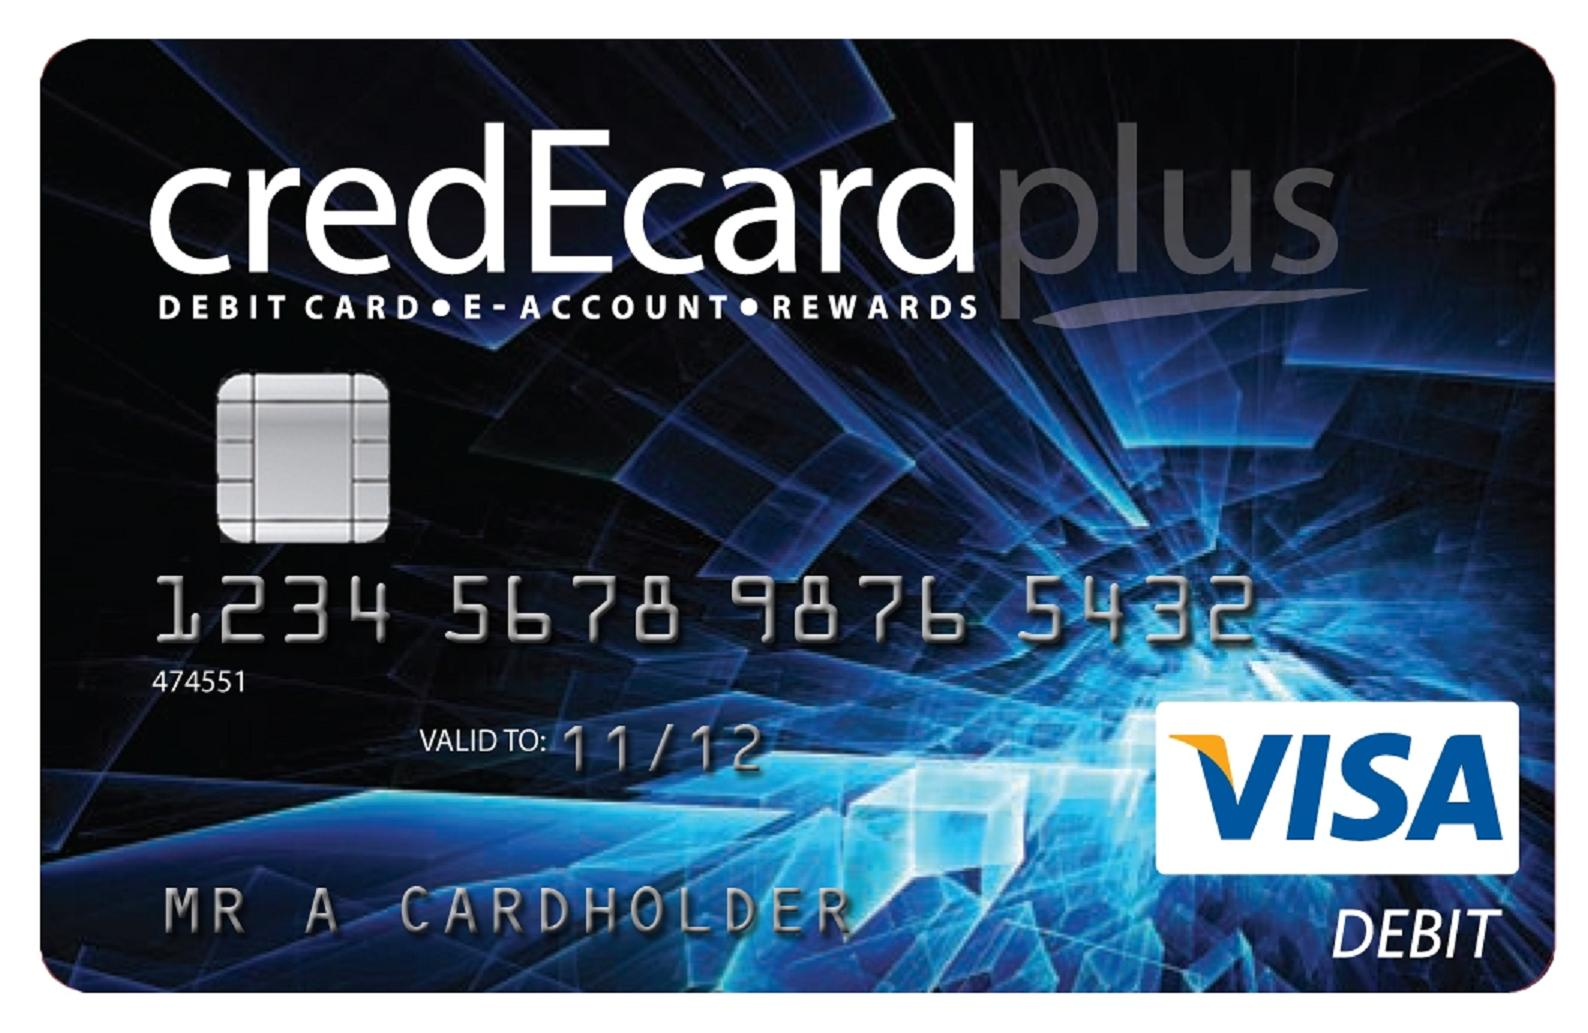 The new instant issue Visa debit credEcard